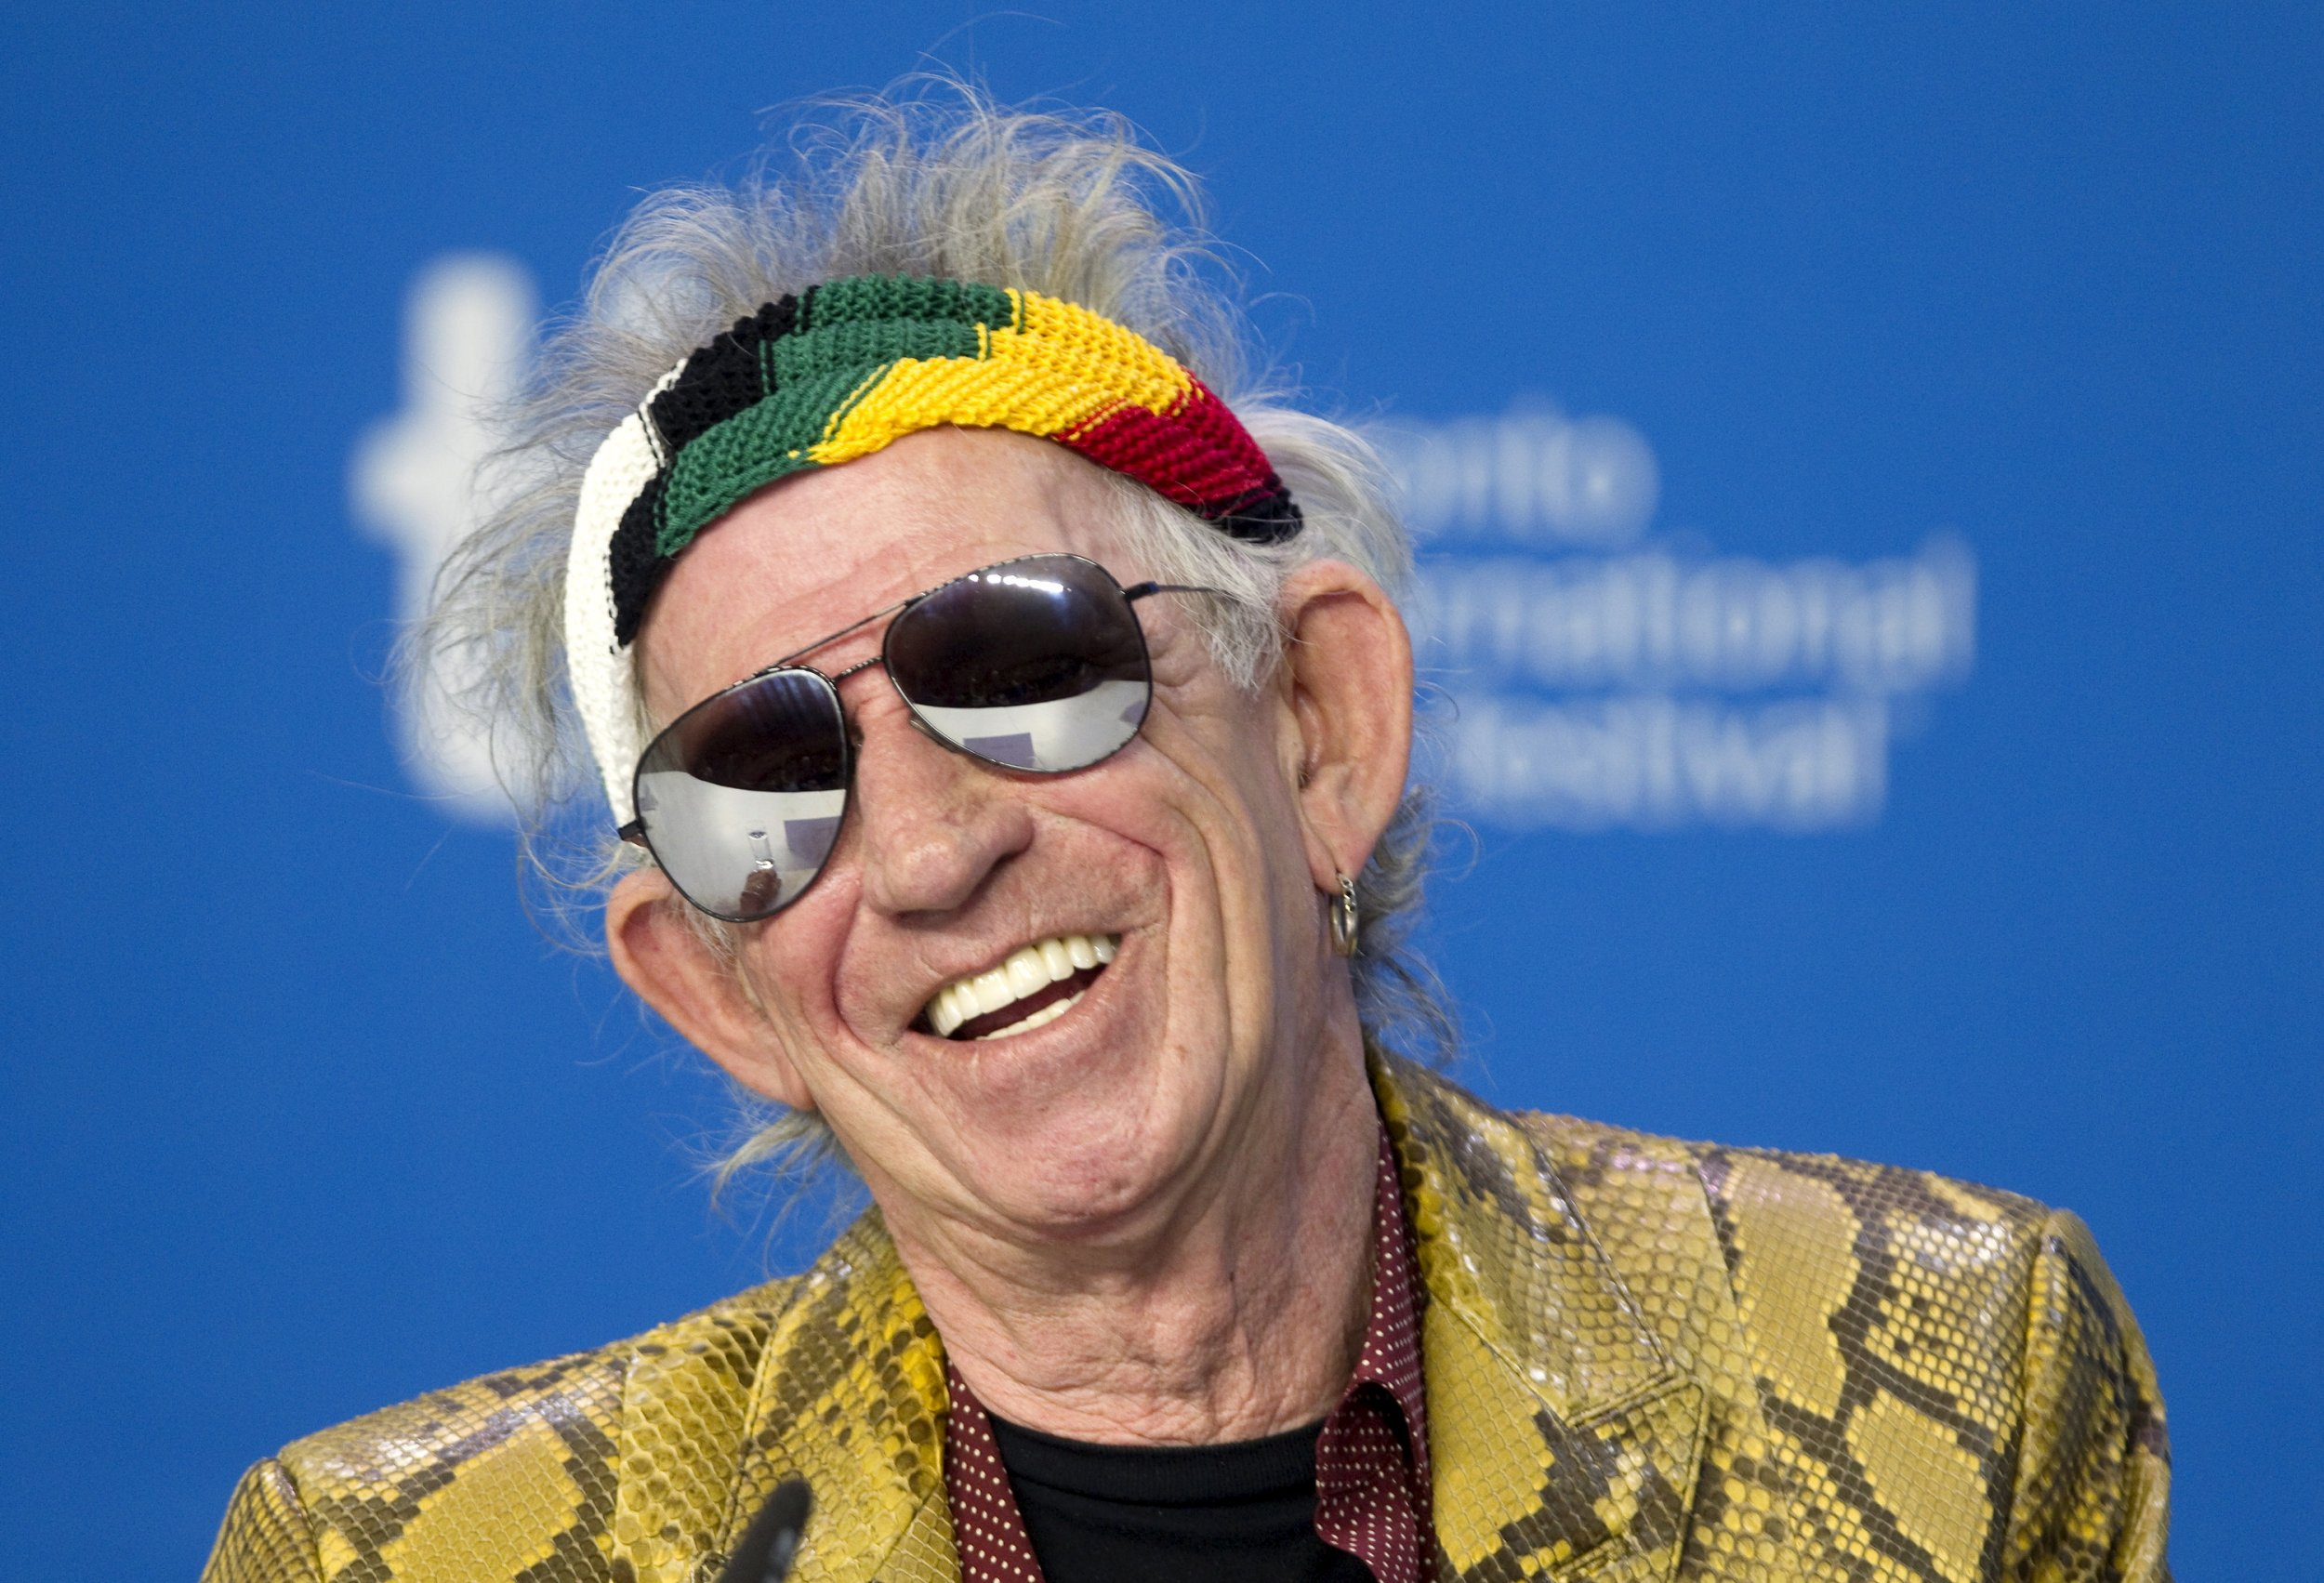 The Many Antics of Late-Period Keith Richards